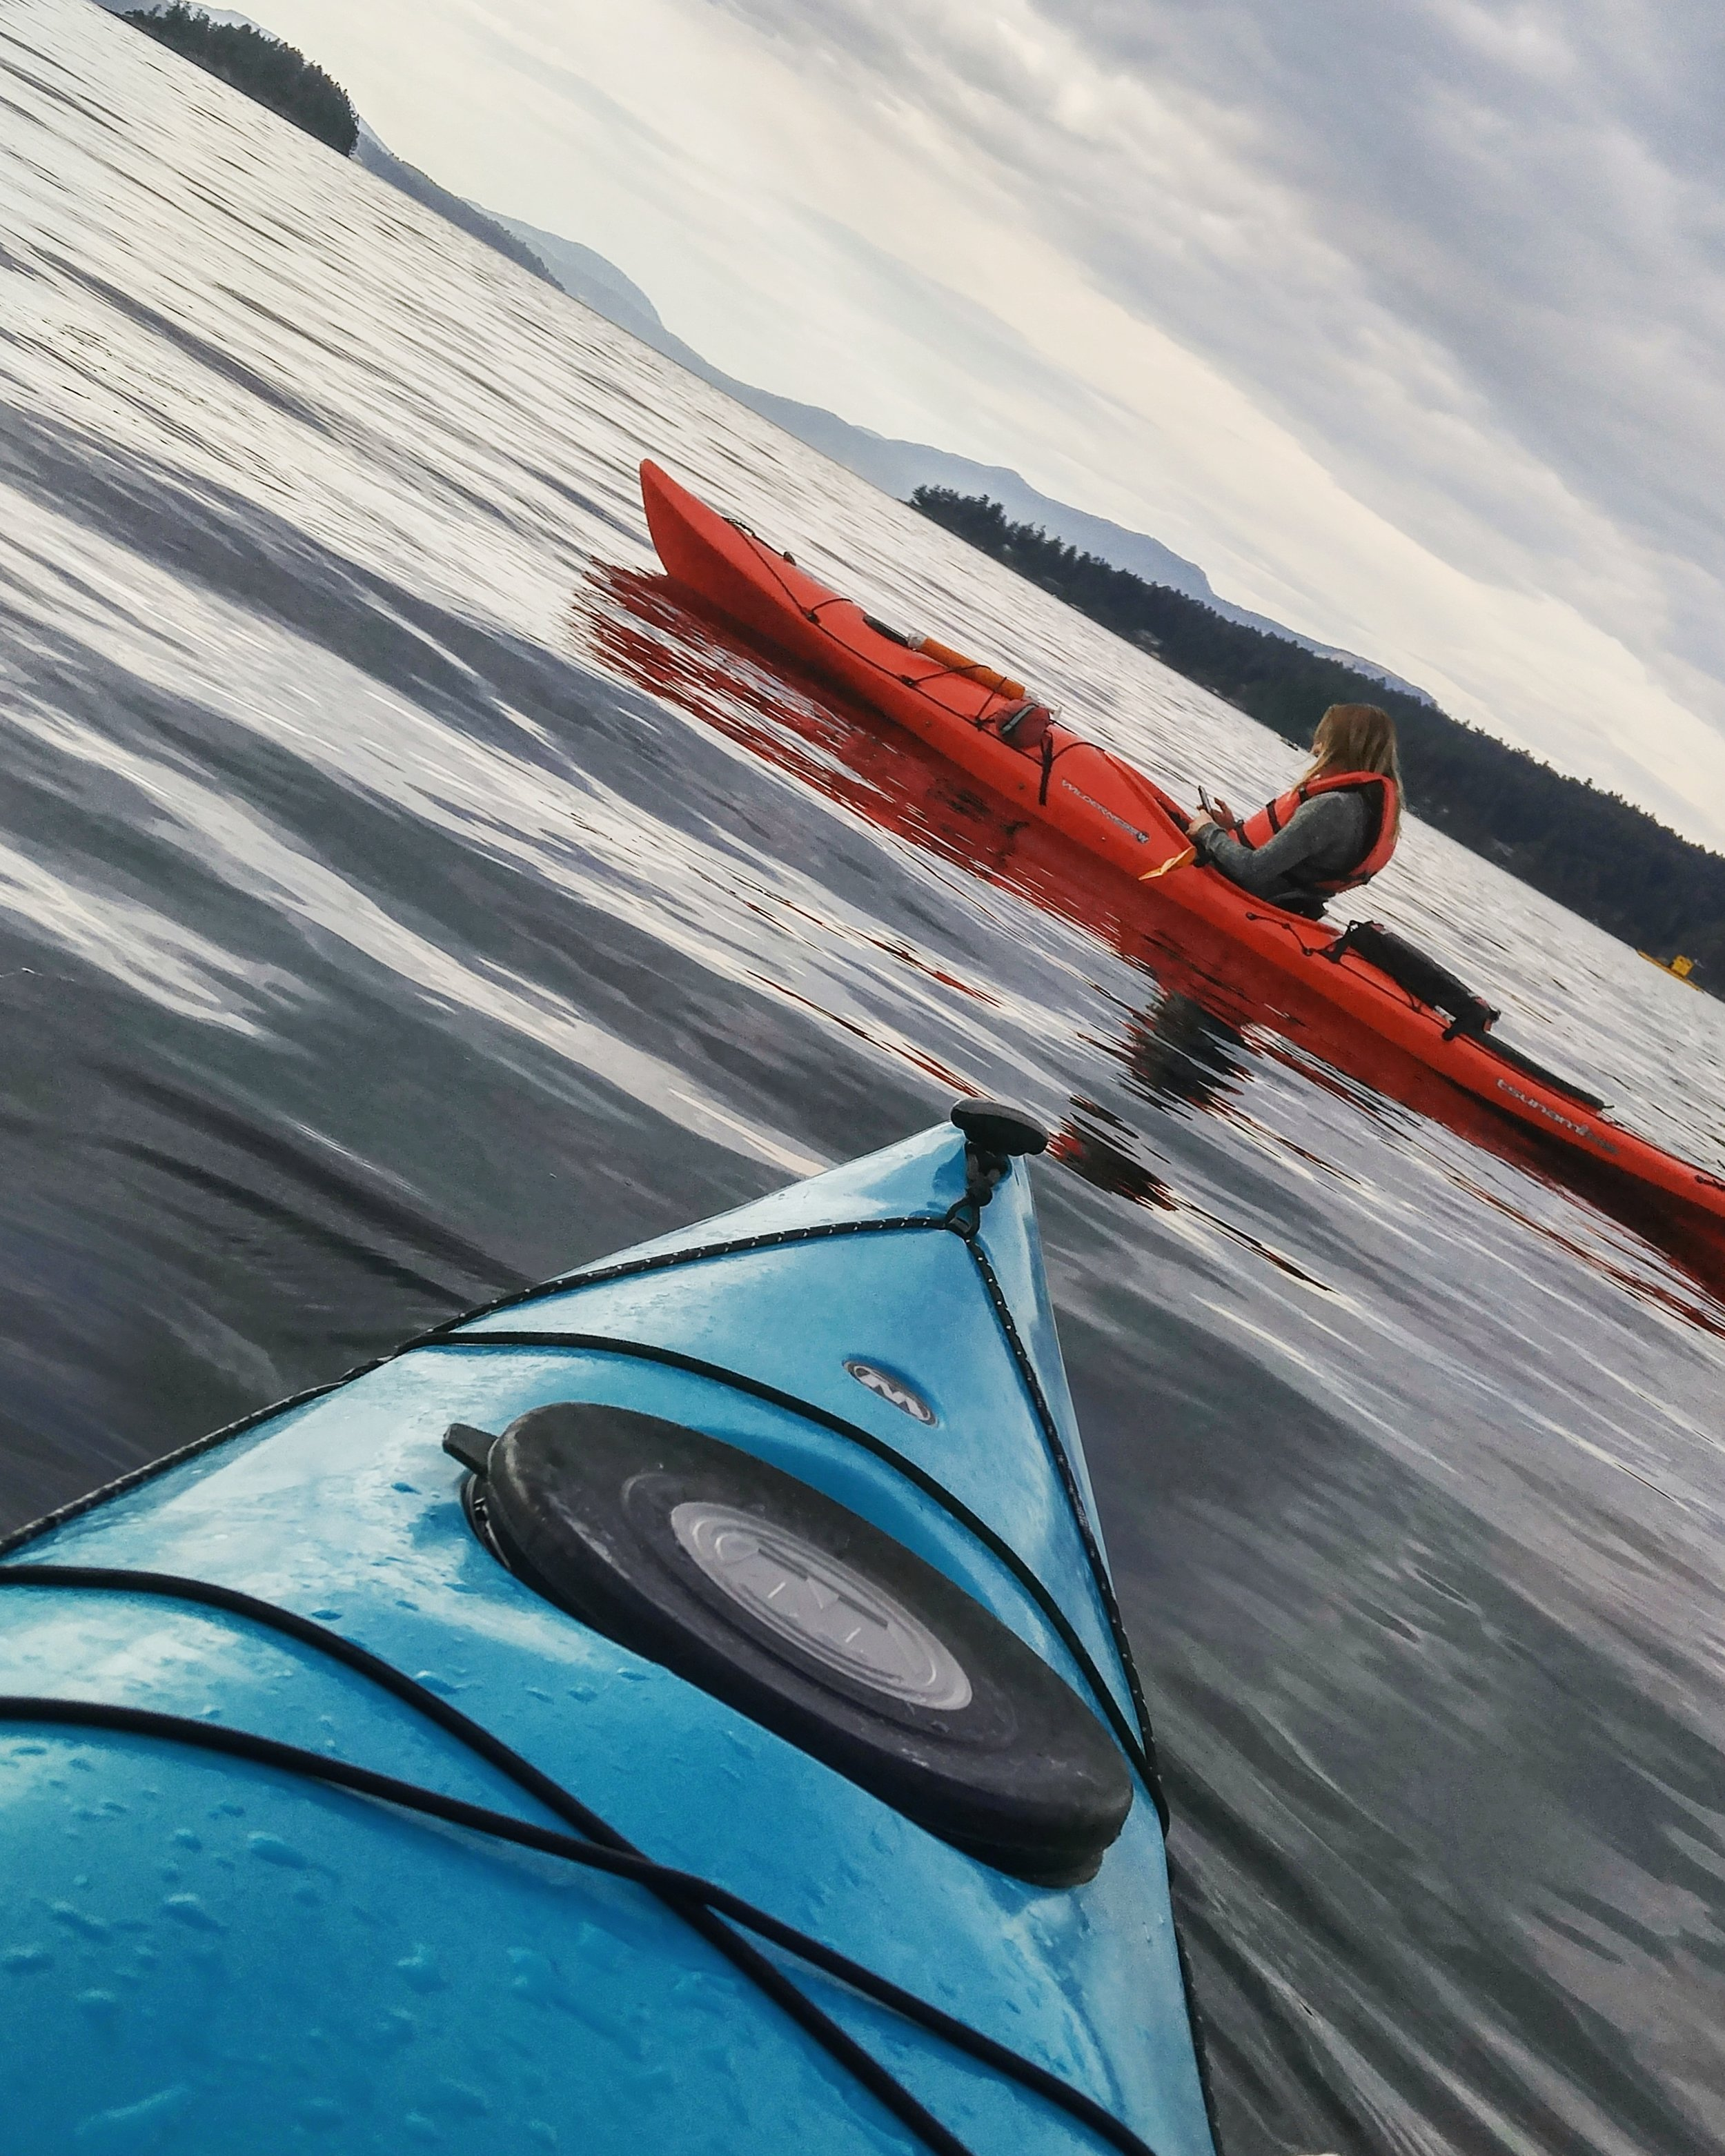 Out for a 'yak in Brentwood Bay. A fine way to spend an evening after work.